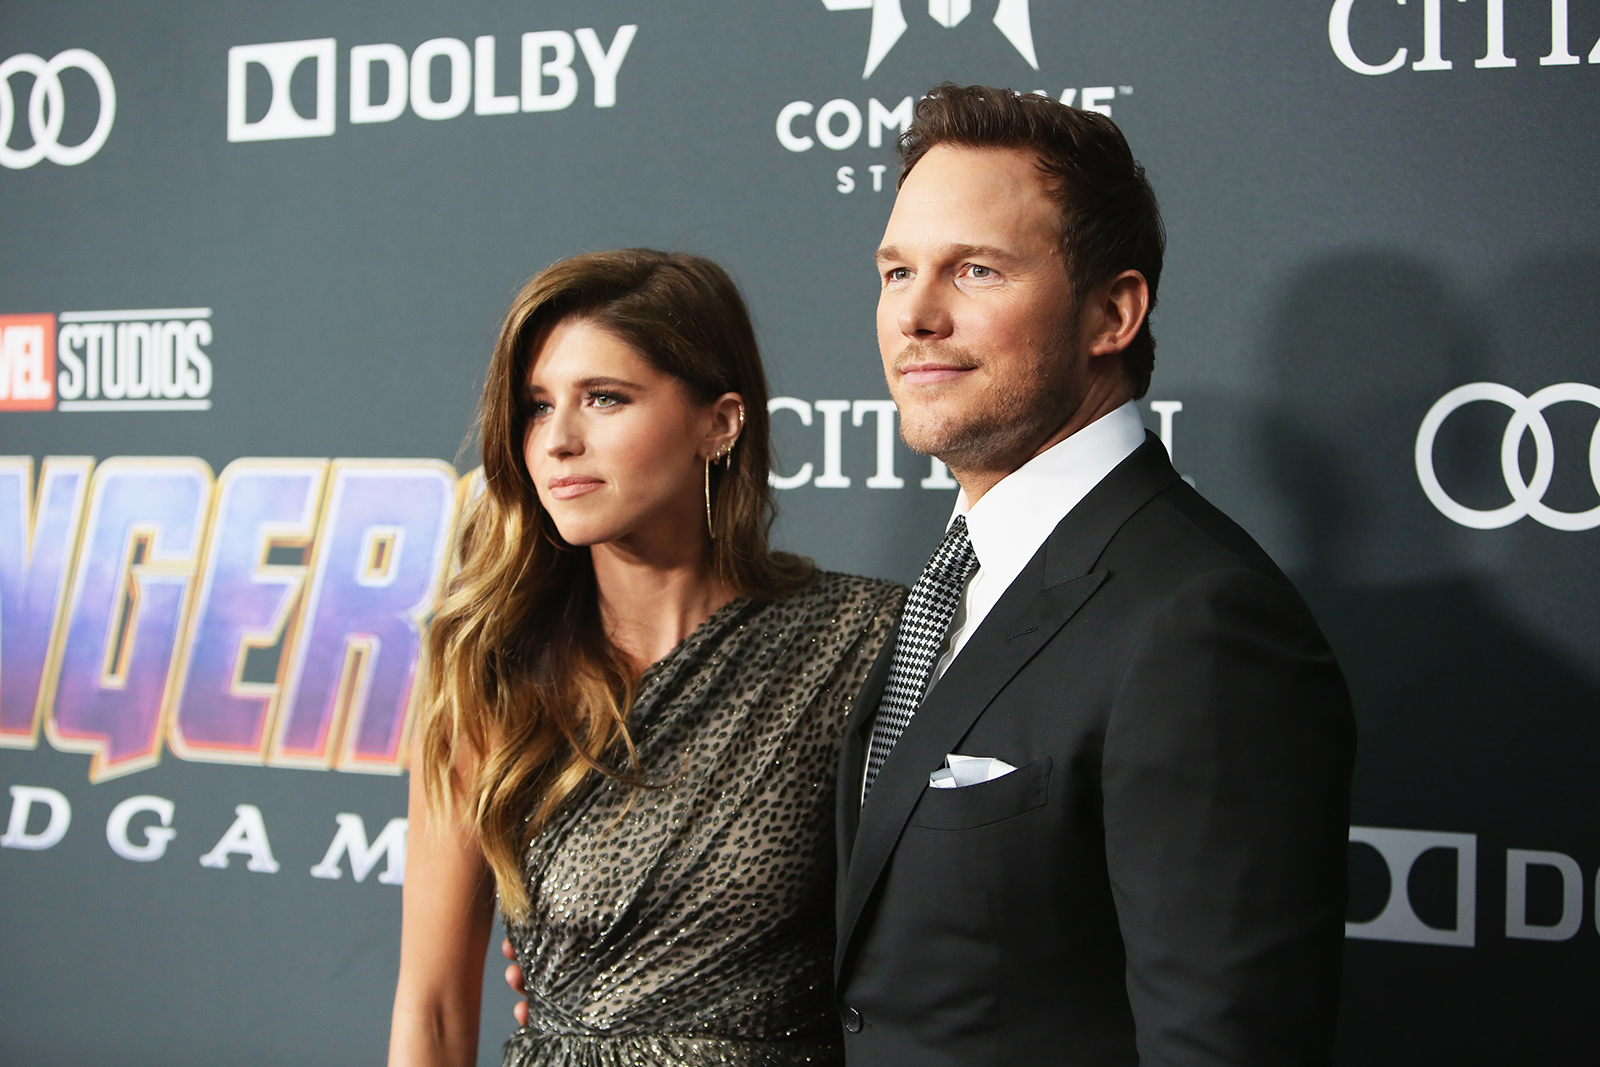 Katherine Schwarzenegger says Chris Pratt is a 'super-supportive' husband